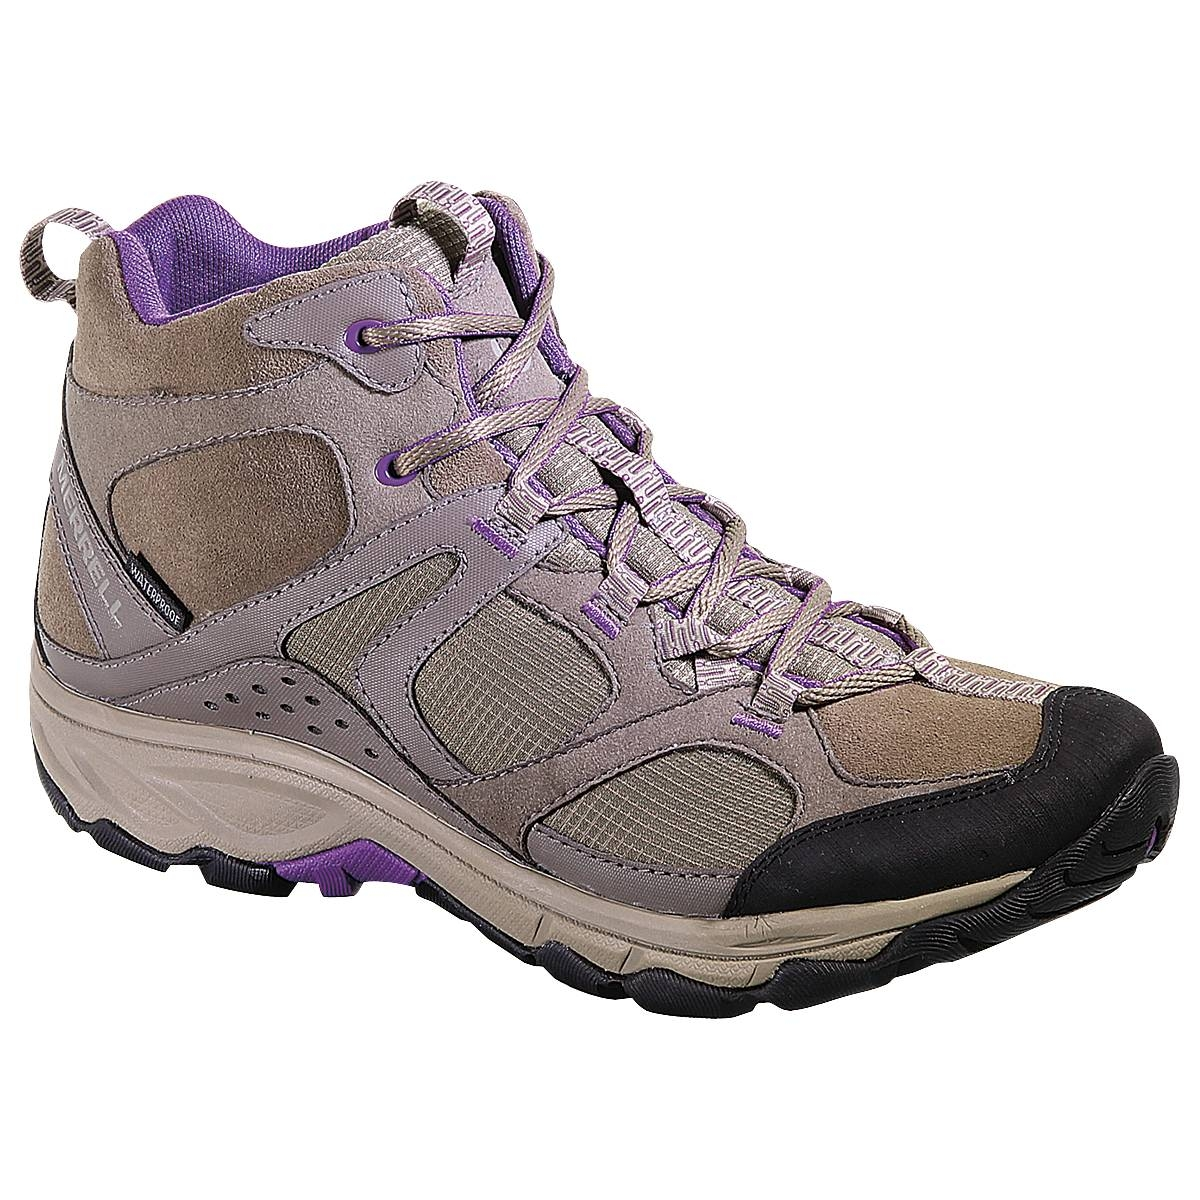 New Merrell All Out Blaze Mid Waterproof Hiking Boot  Women39s